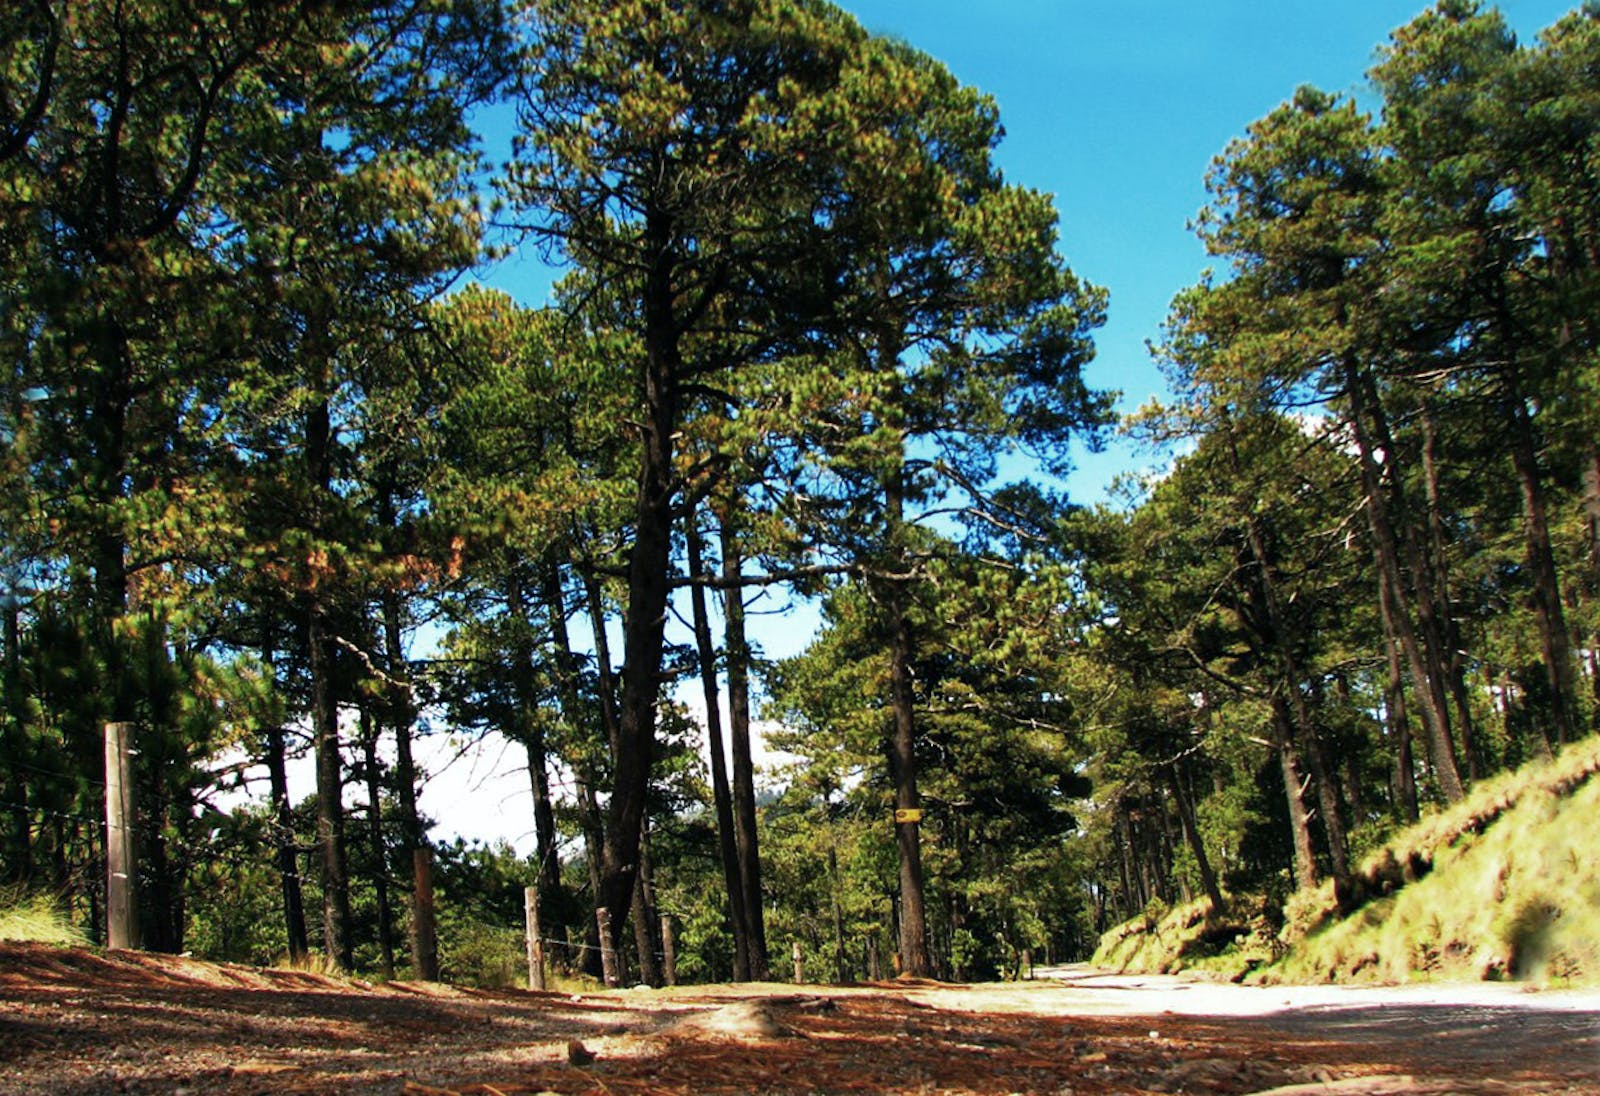 Trans-Mexican Volcanic Belt Pine-Oak Forests